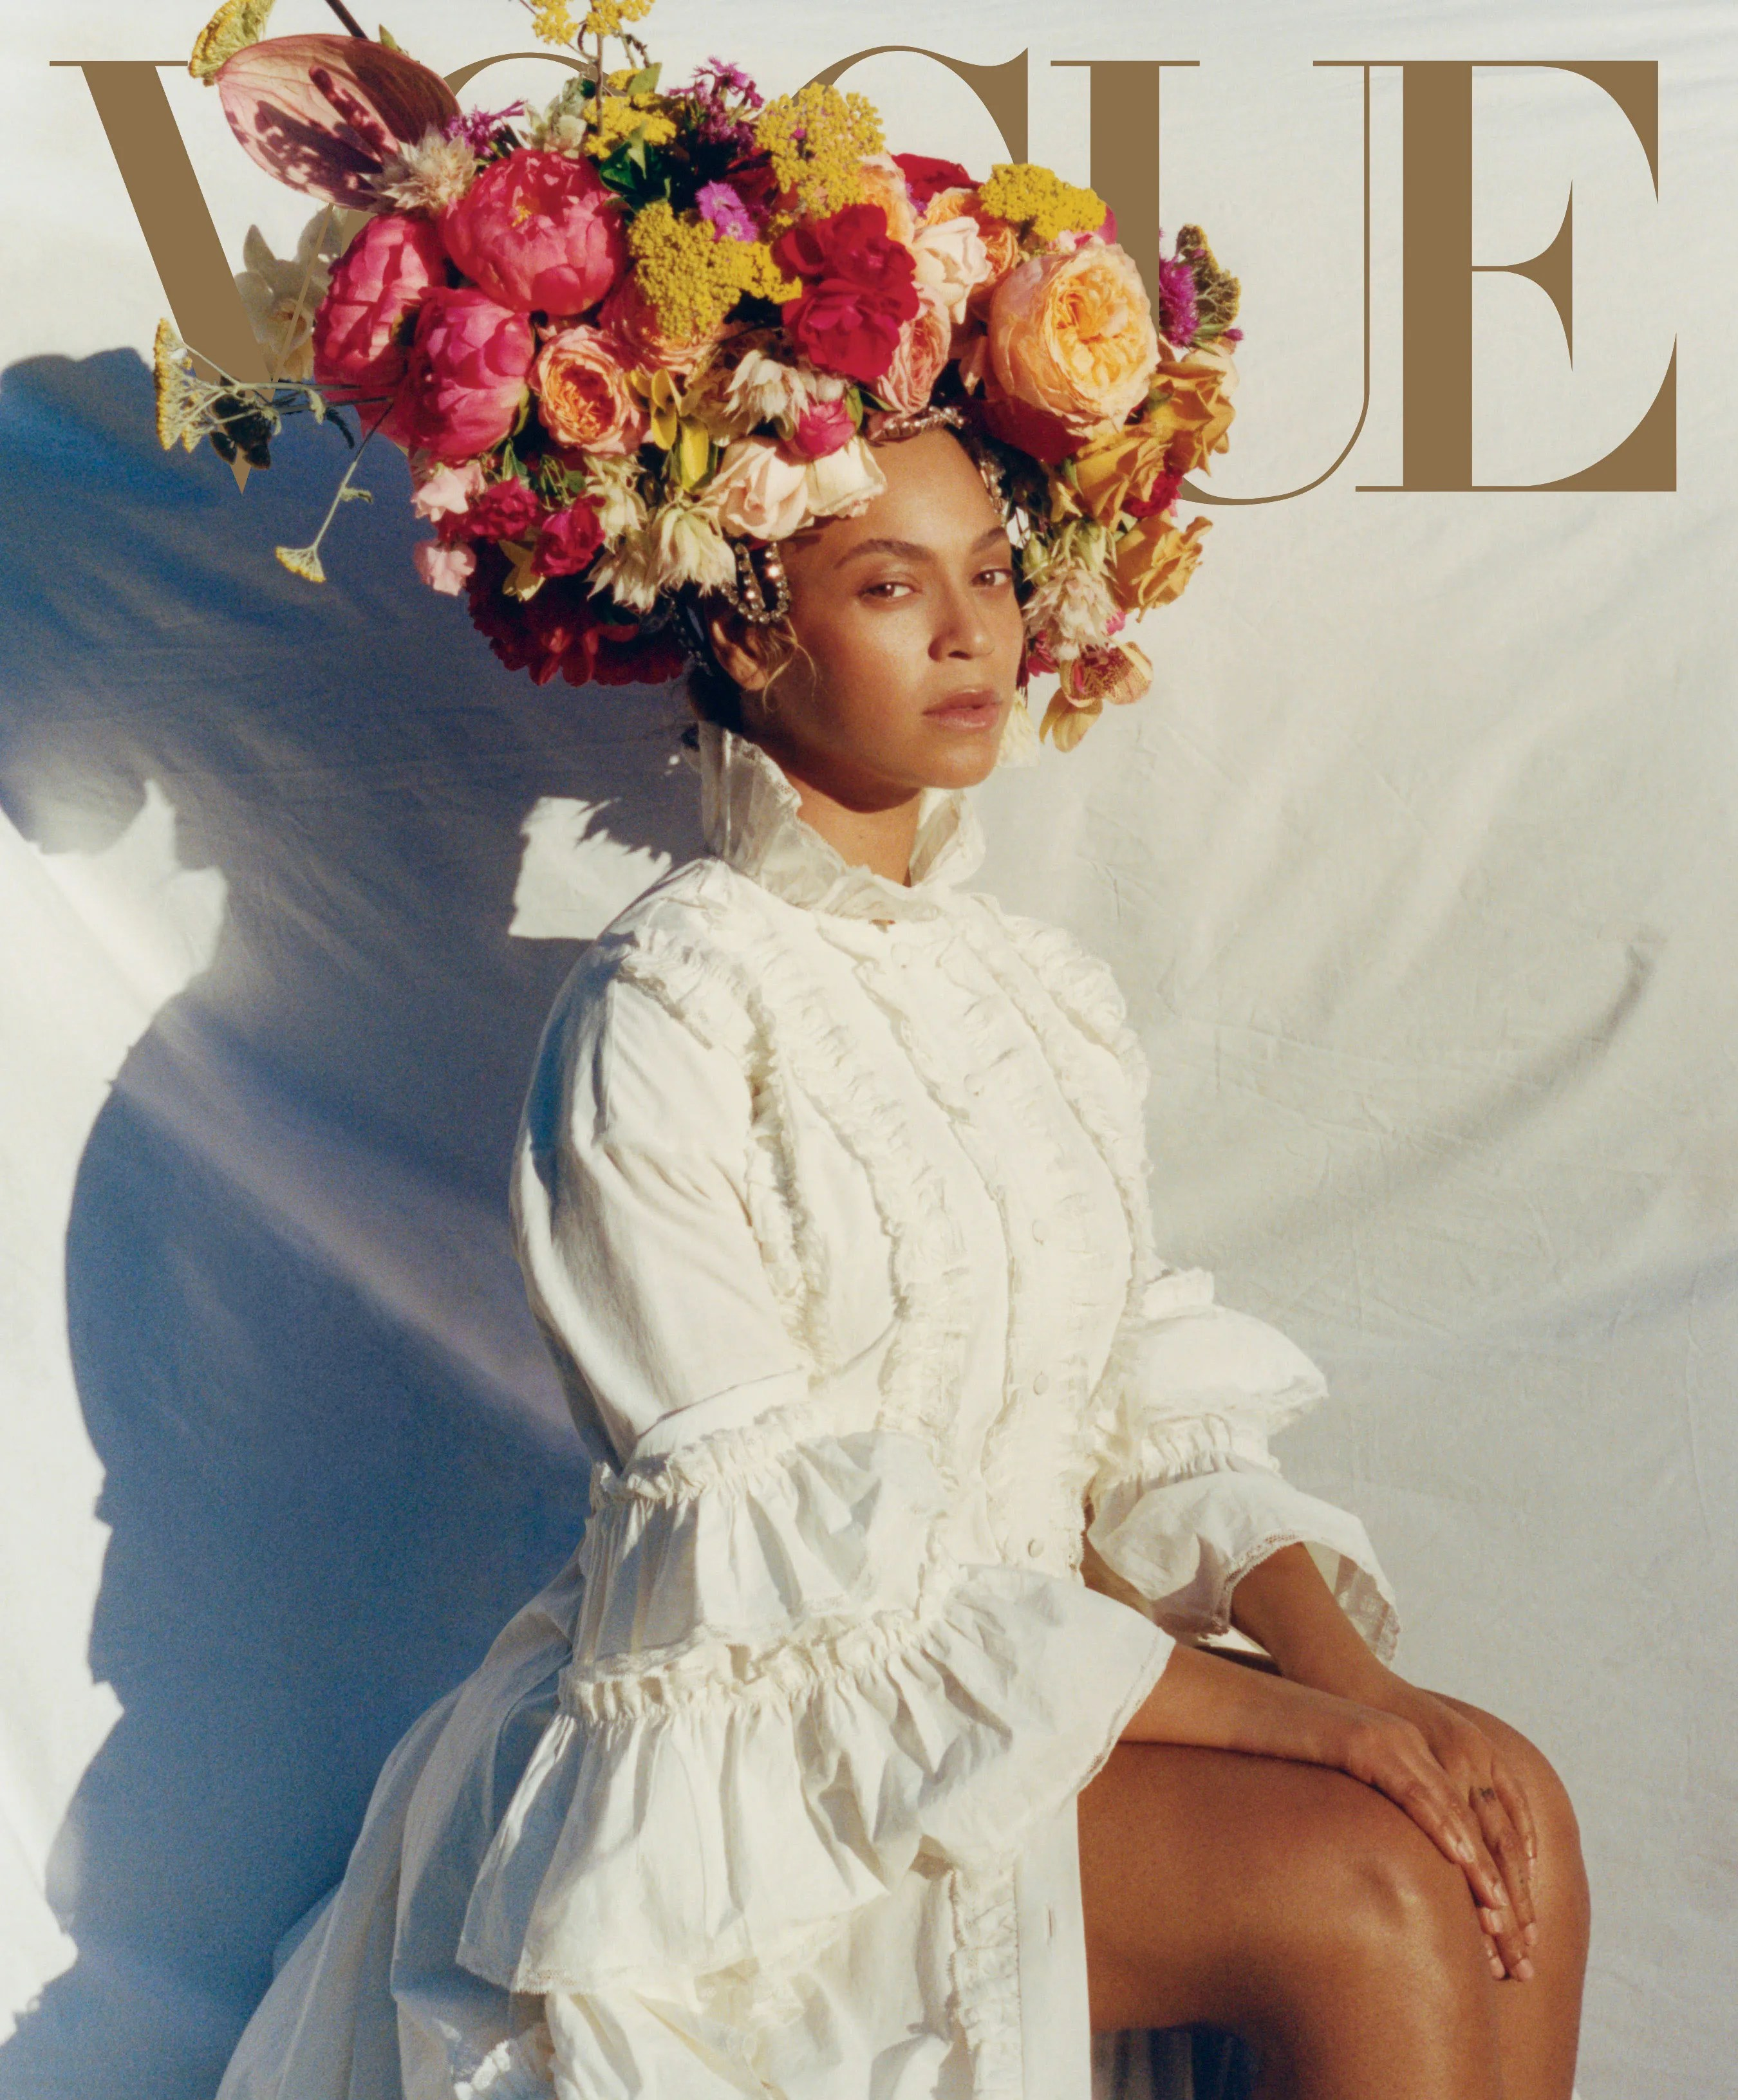 beyonce september issue in her own